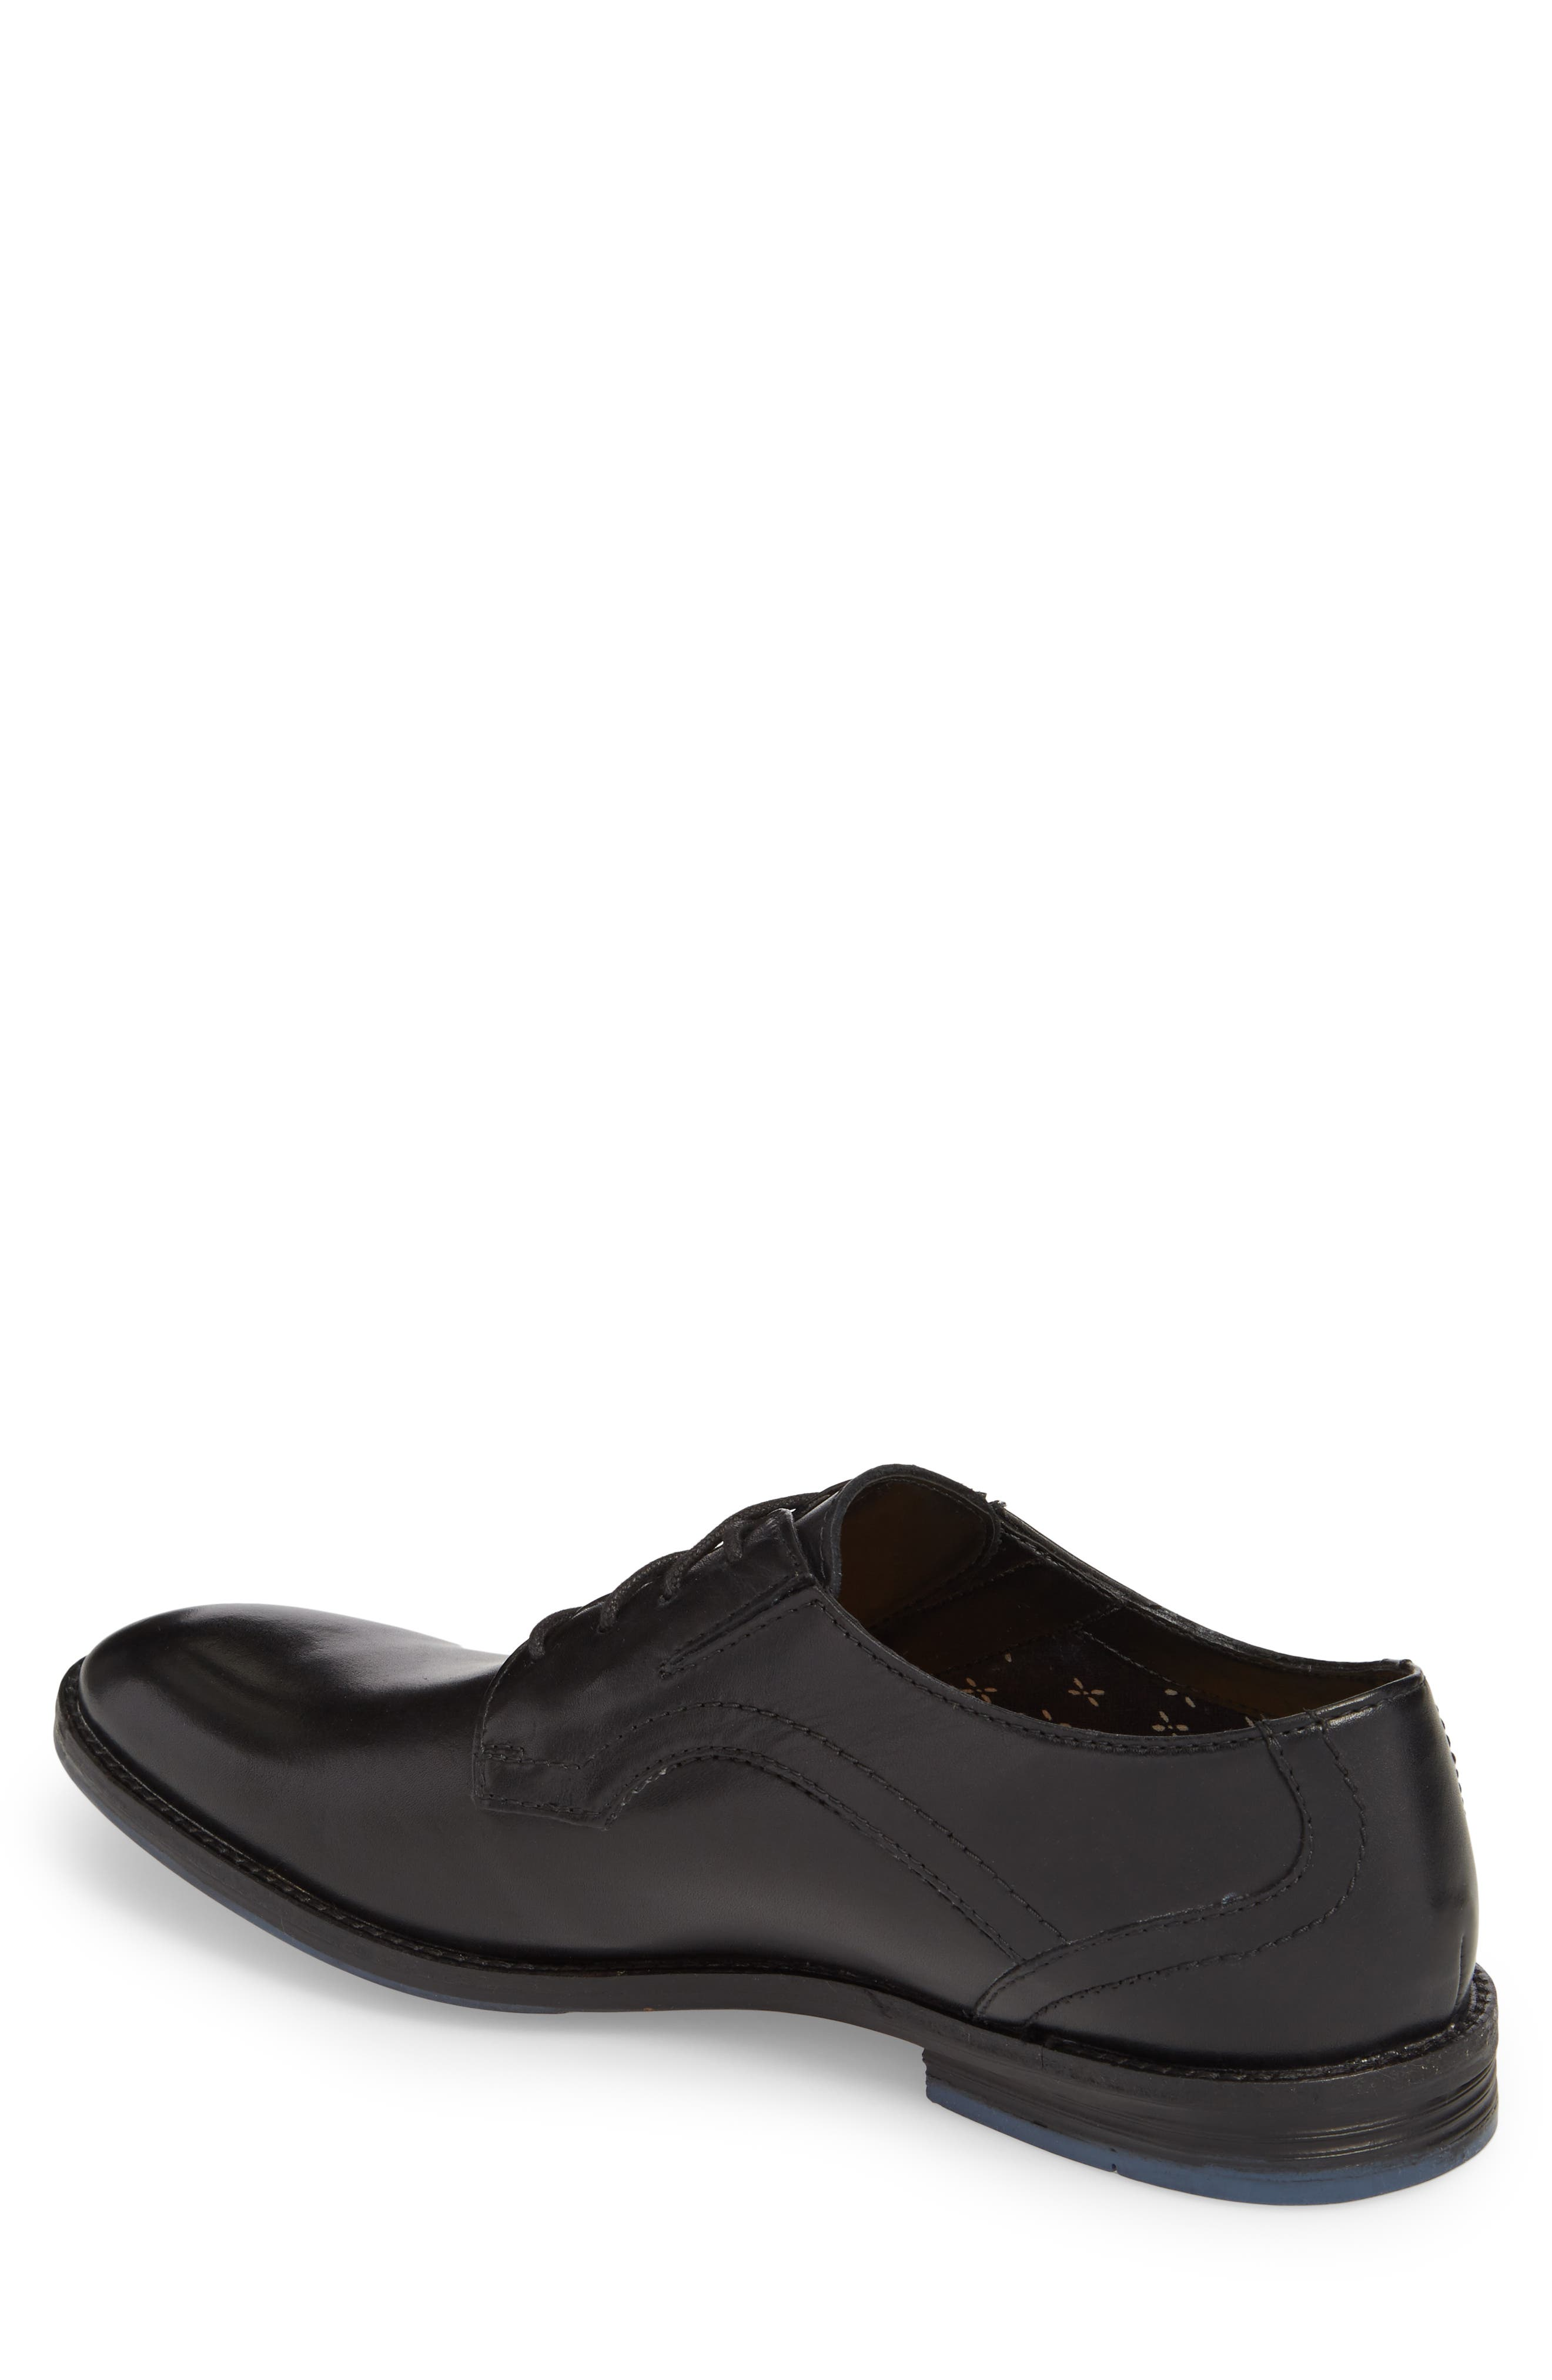 Clarks<sup>®</sup> Prangley Walk Plain Toe Derby,                             Alternate thumbnail 2, color,                             Black Leather